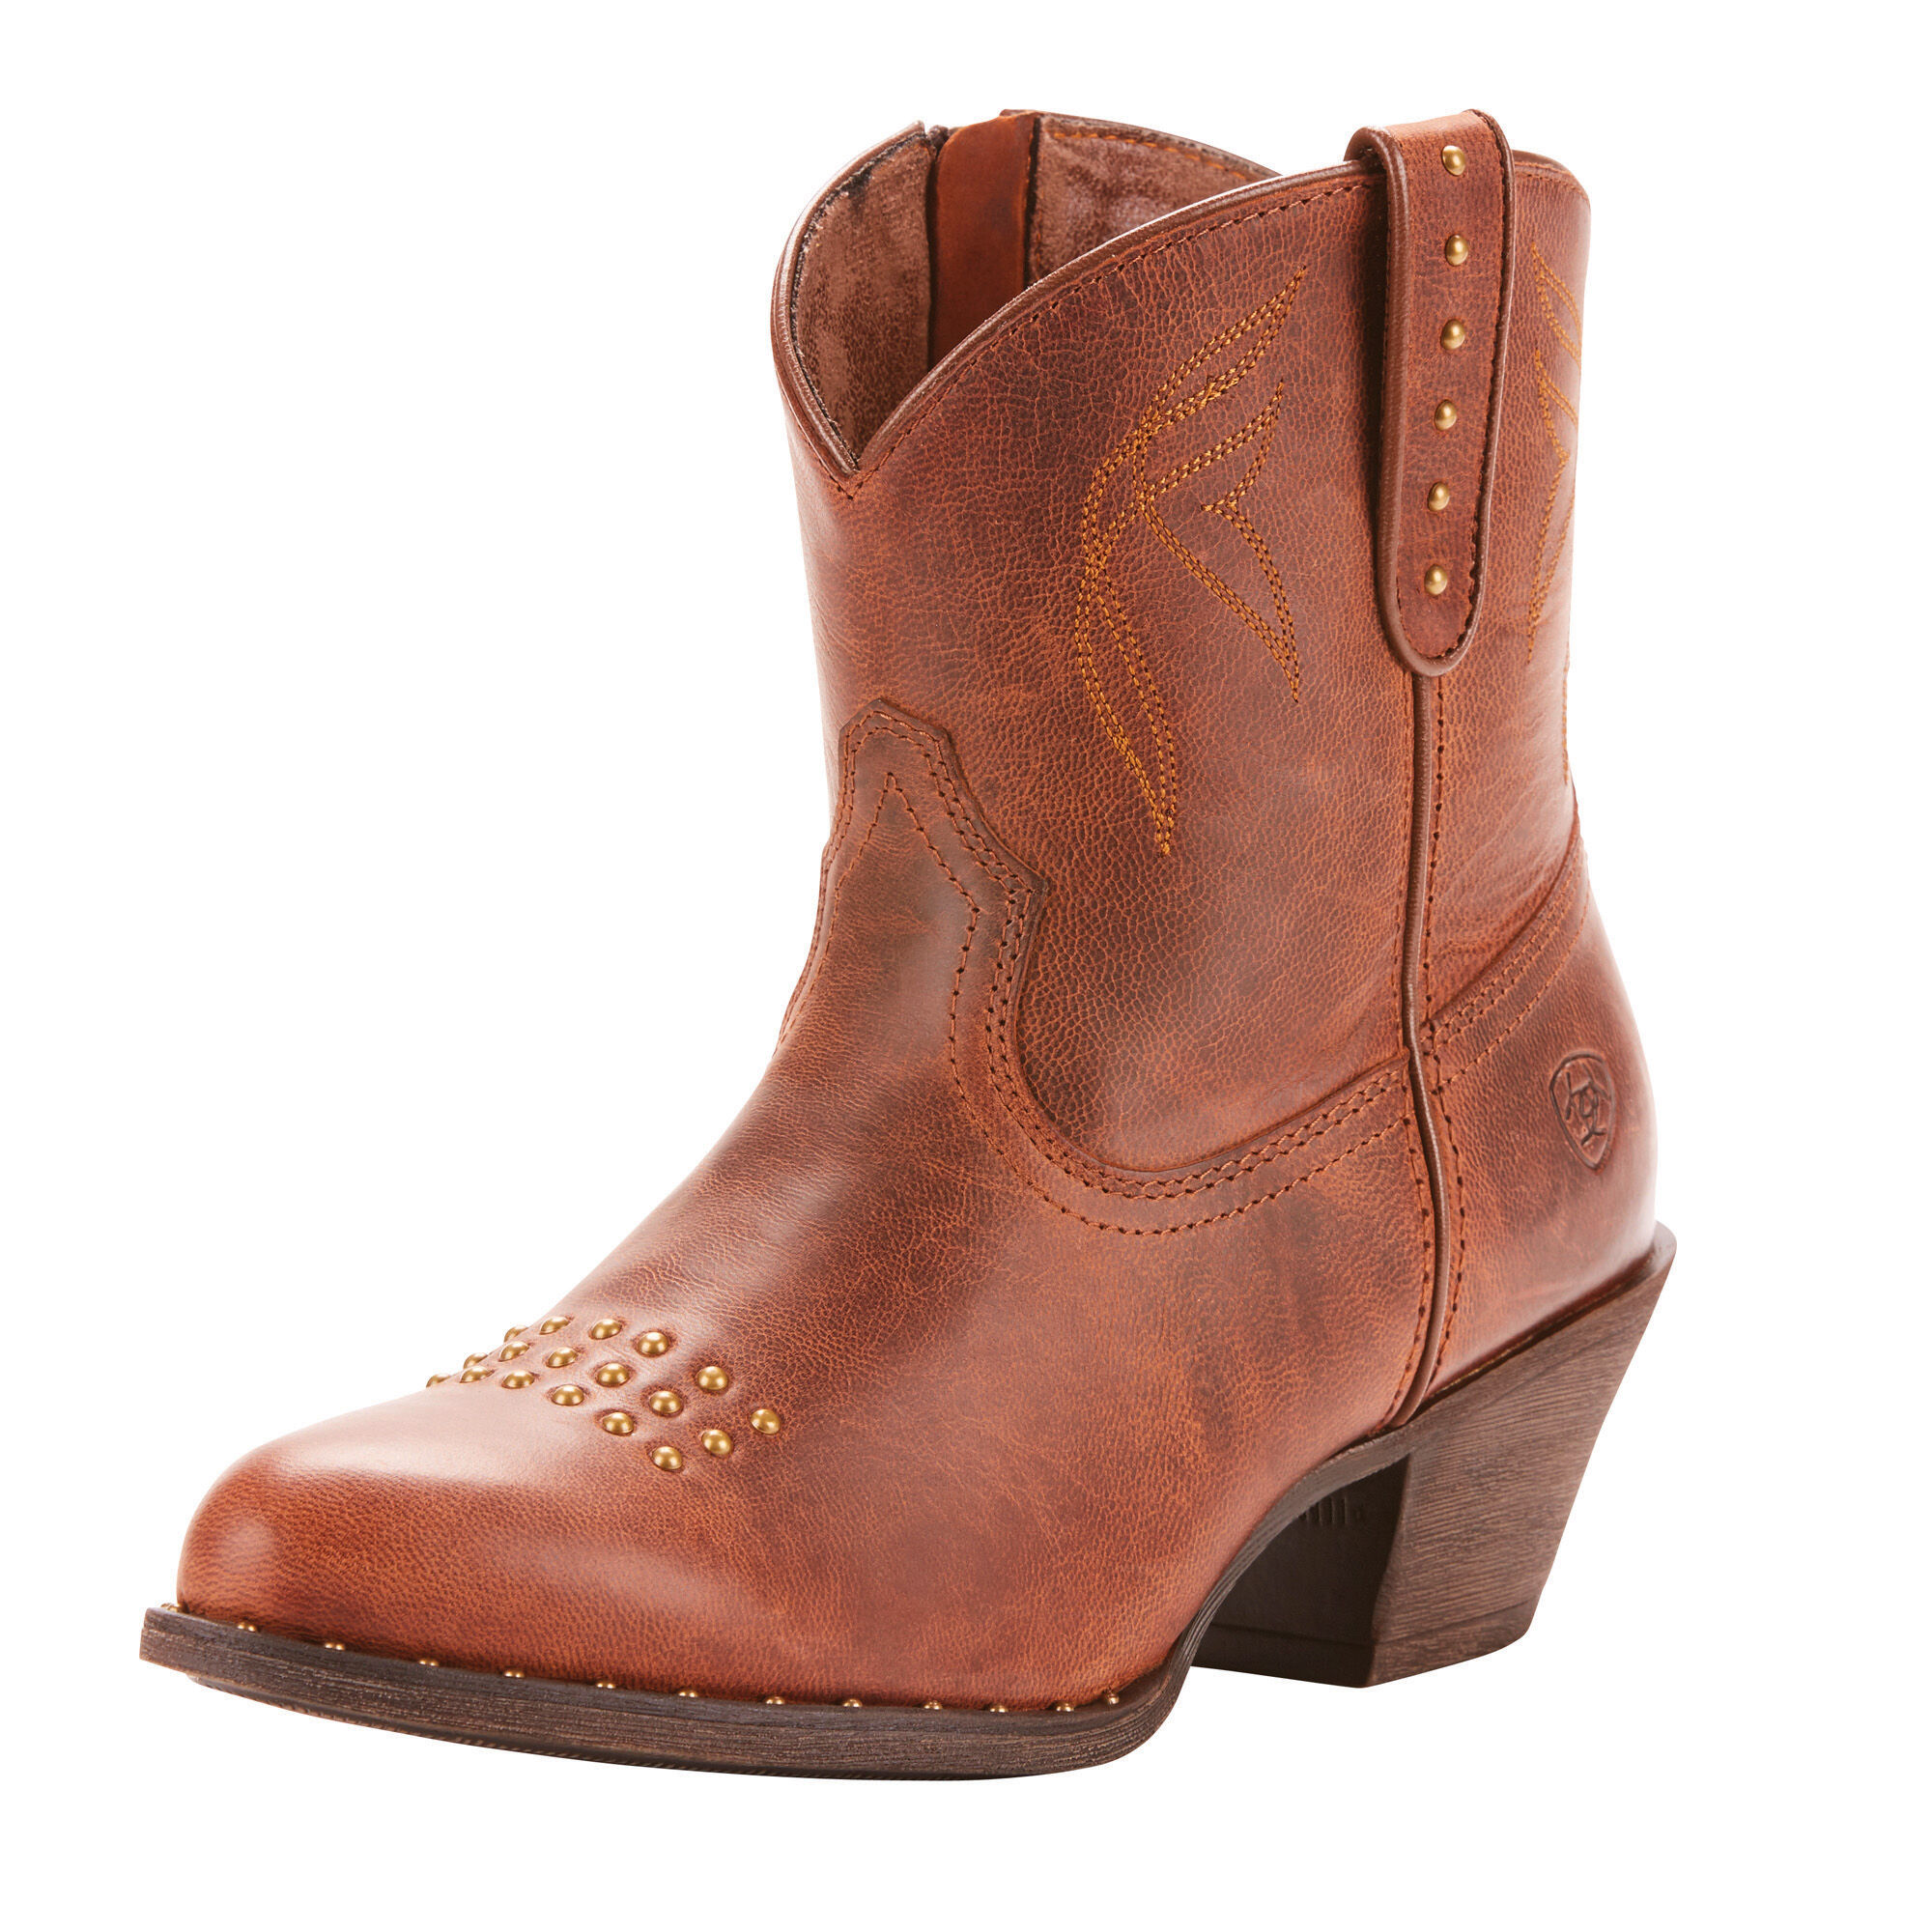 Women's Dakota Western Boots in Sassy Brown Leather by Ariat